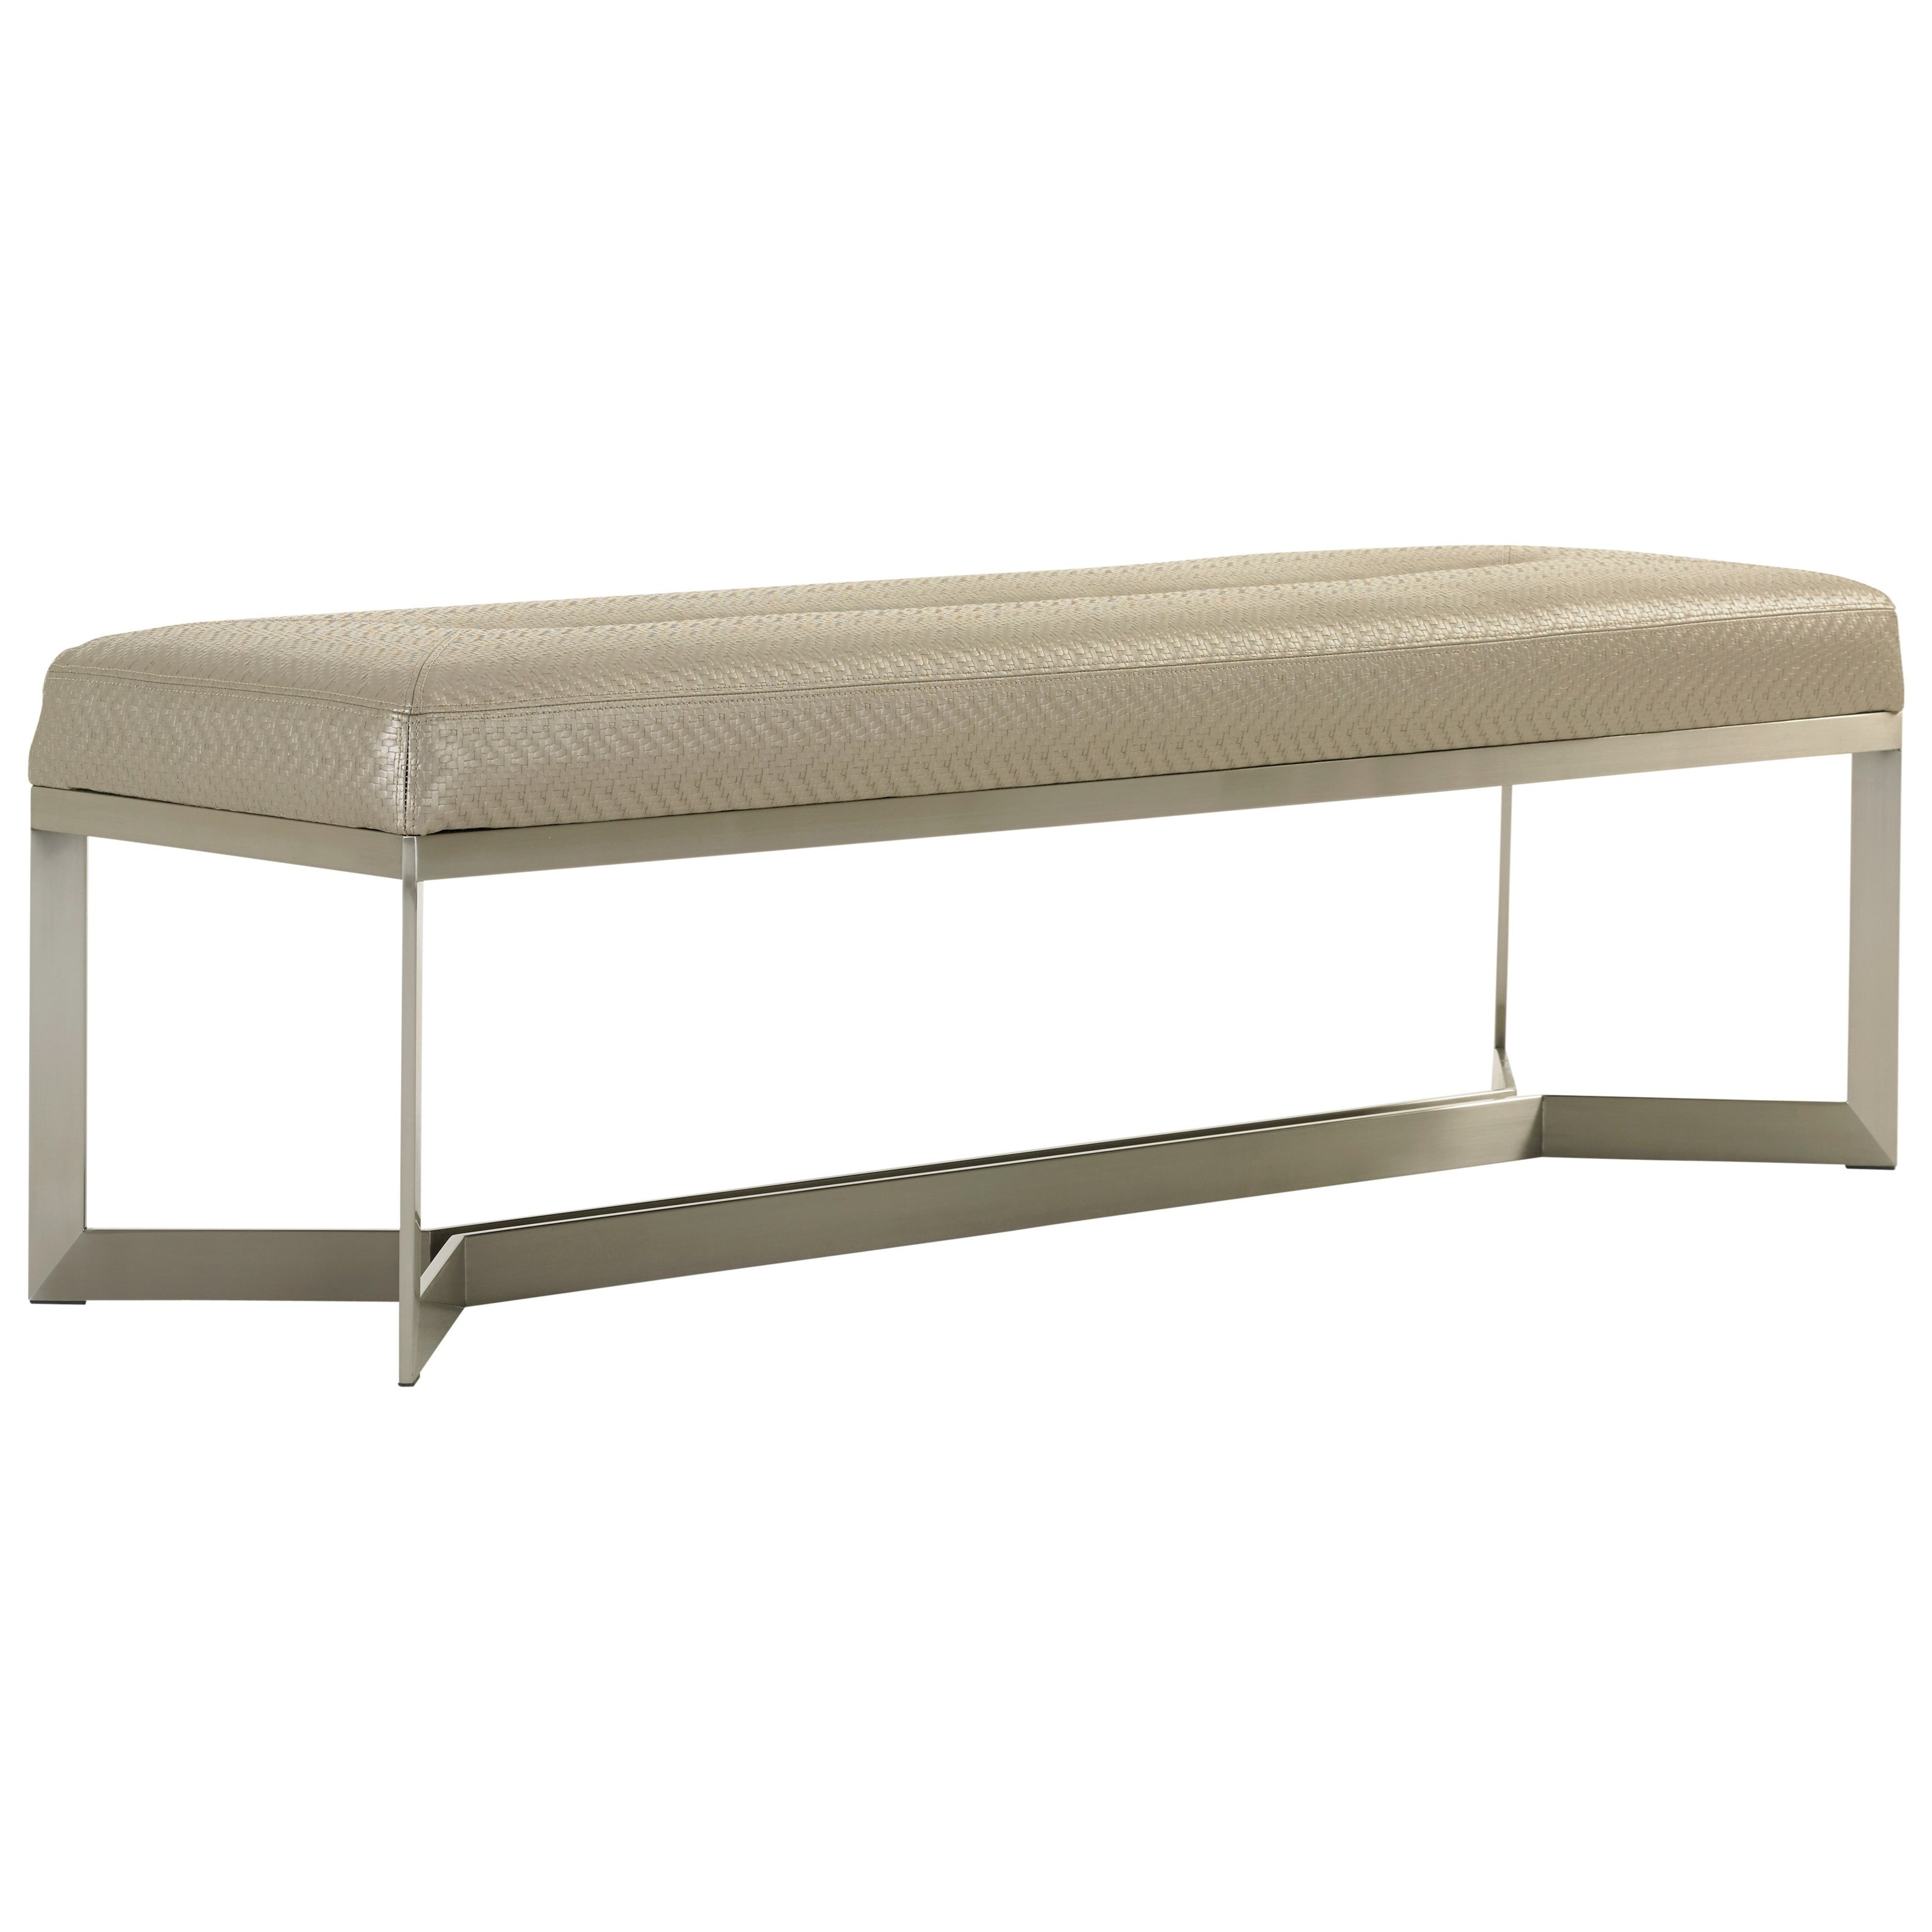 MacArthur Park Amador Upholstered Bed Bench by Lexington at Johnny Janosik